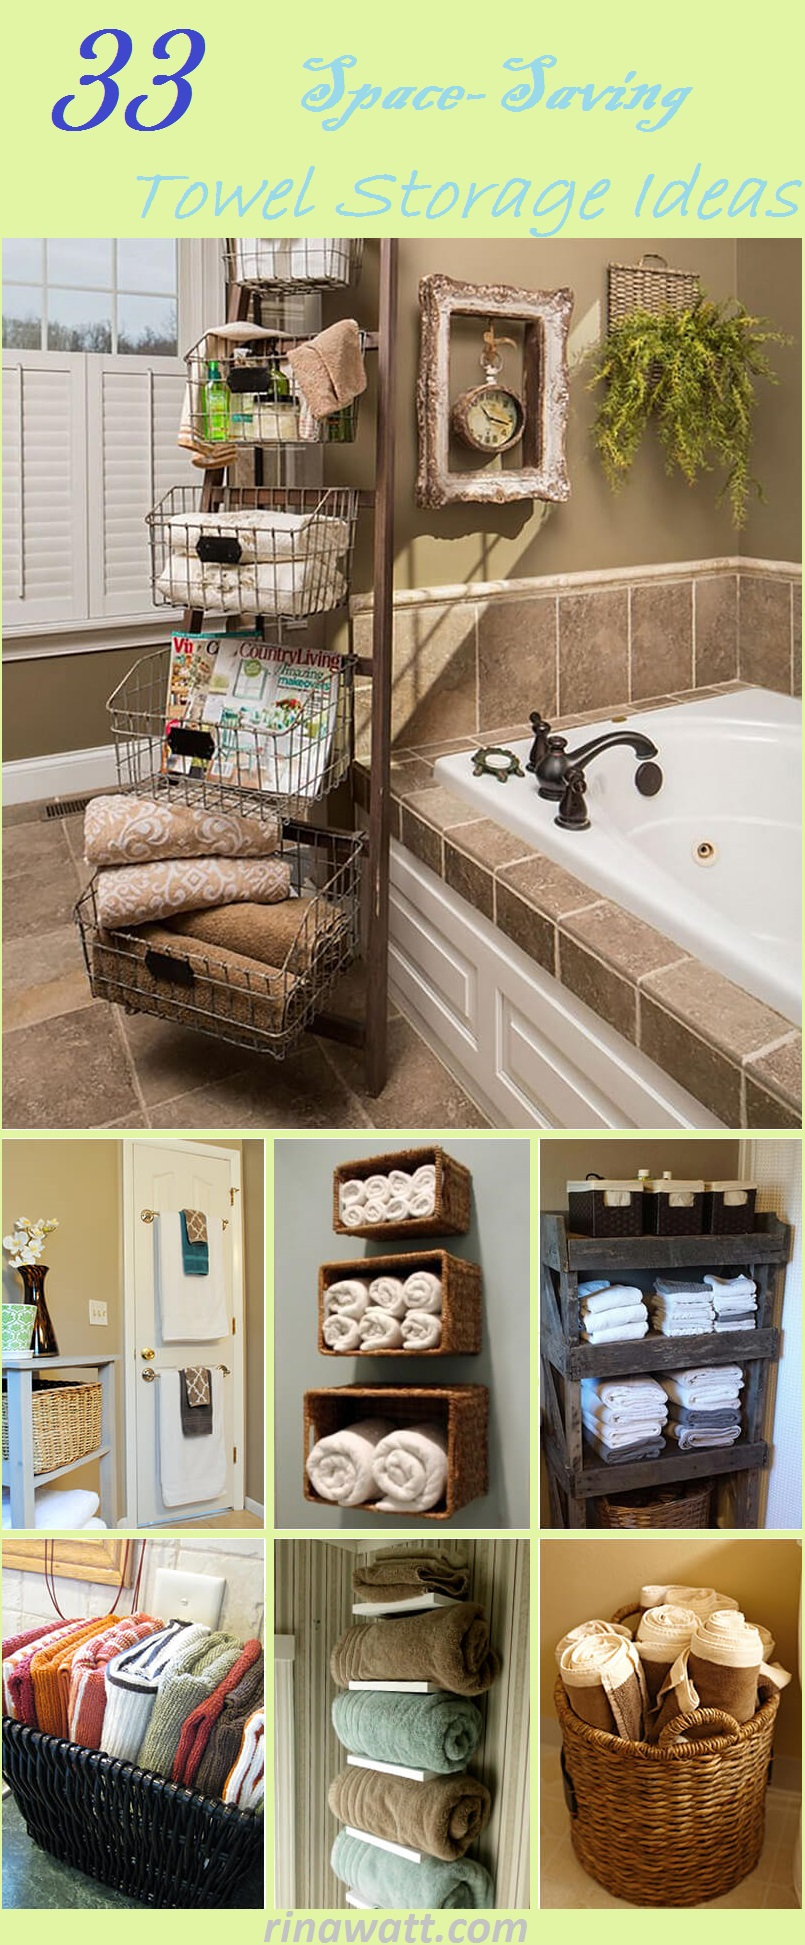 33 Space Saving Towel Storage Ideas For Your Bathroom Rina Watt Blogger Home Decor Diy And Recipes